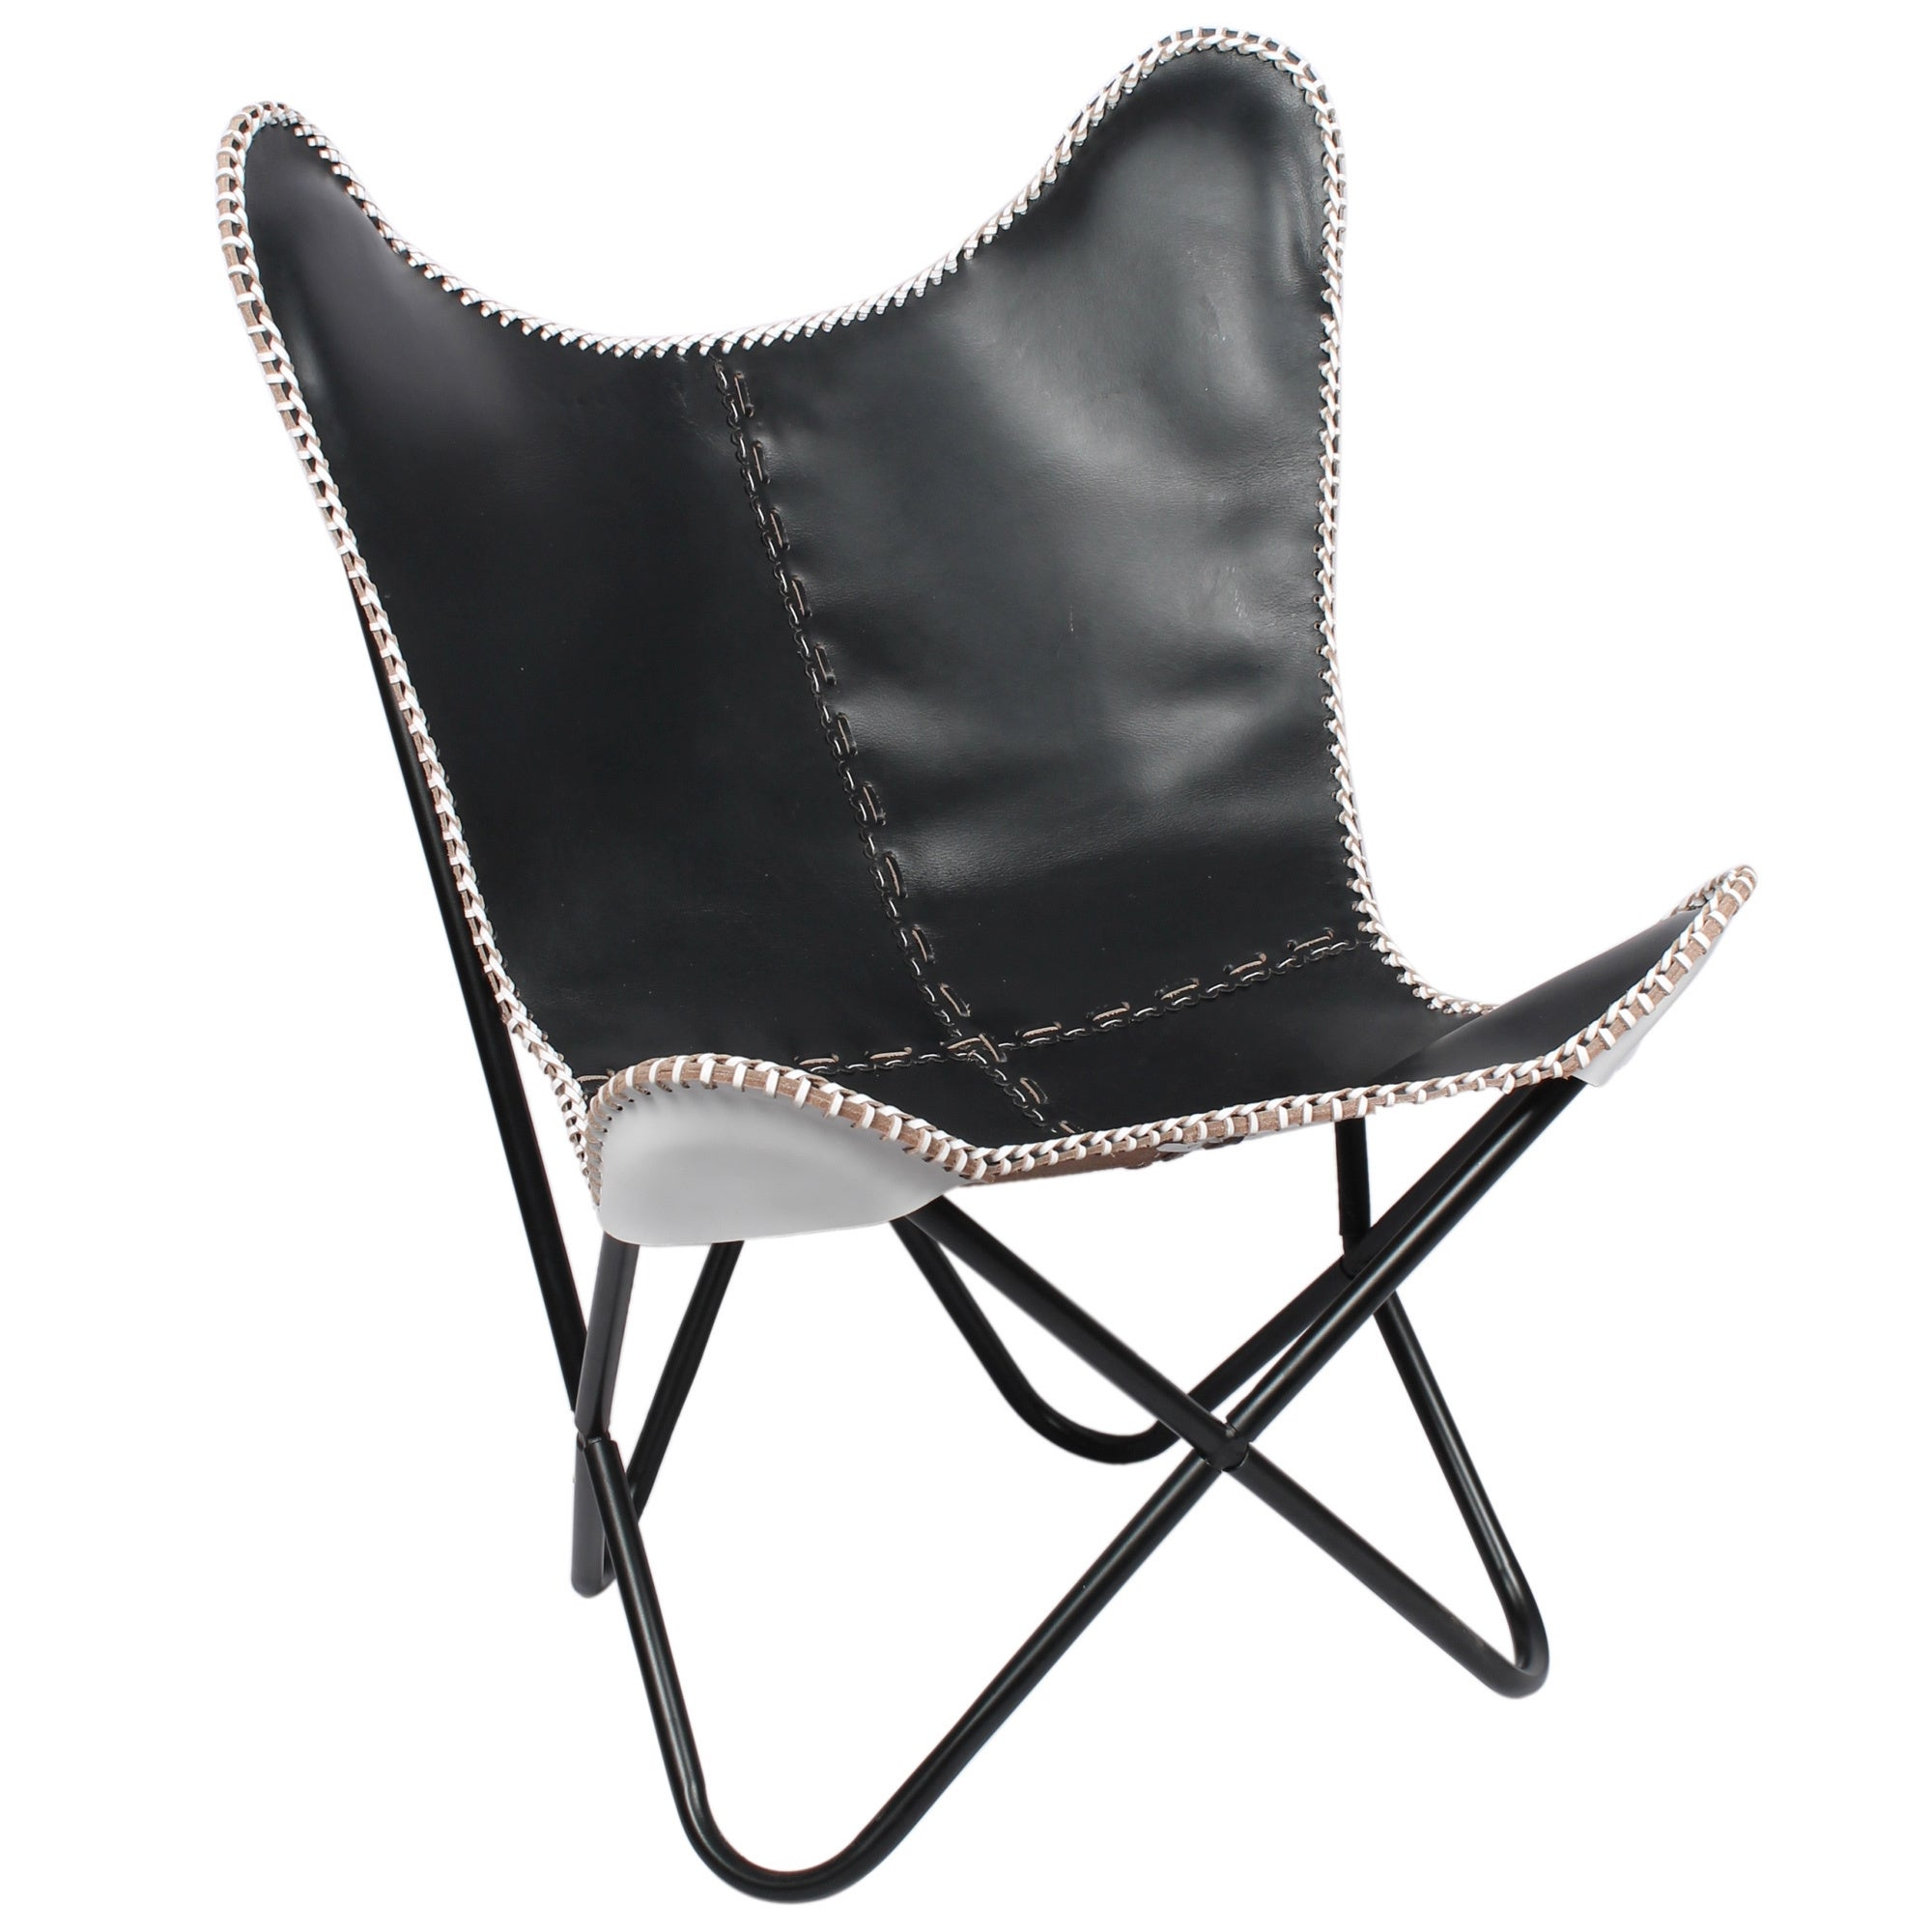 Horizon Black Leather Chair with White Weave